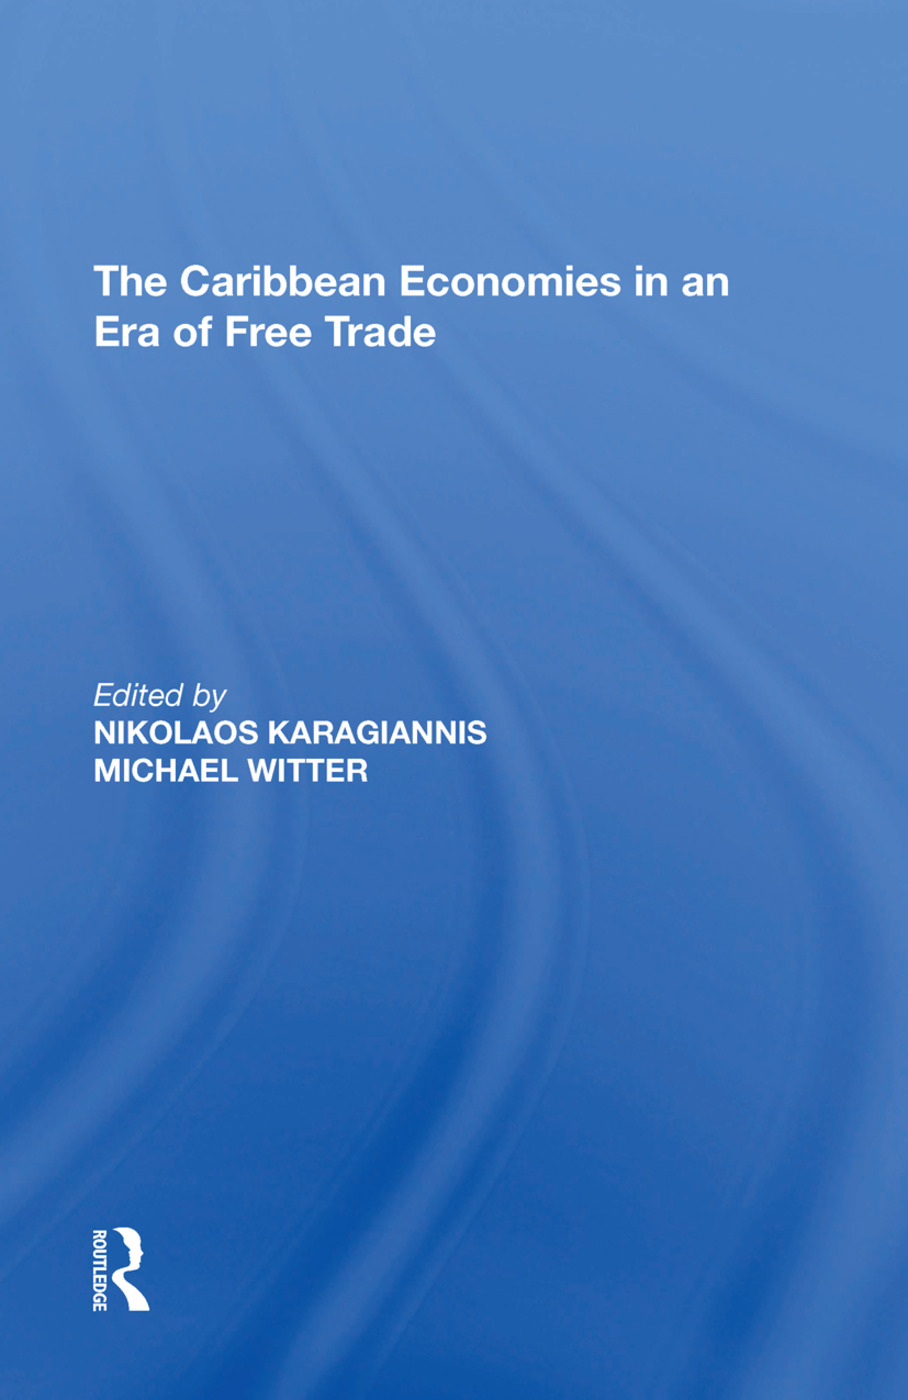 The Caribbean Economies in an Era of Free Trade